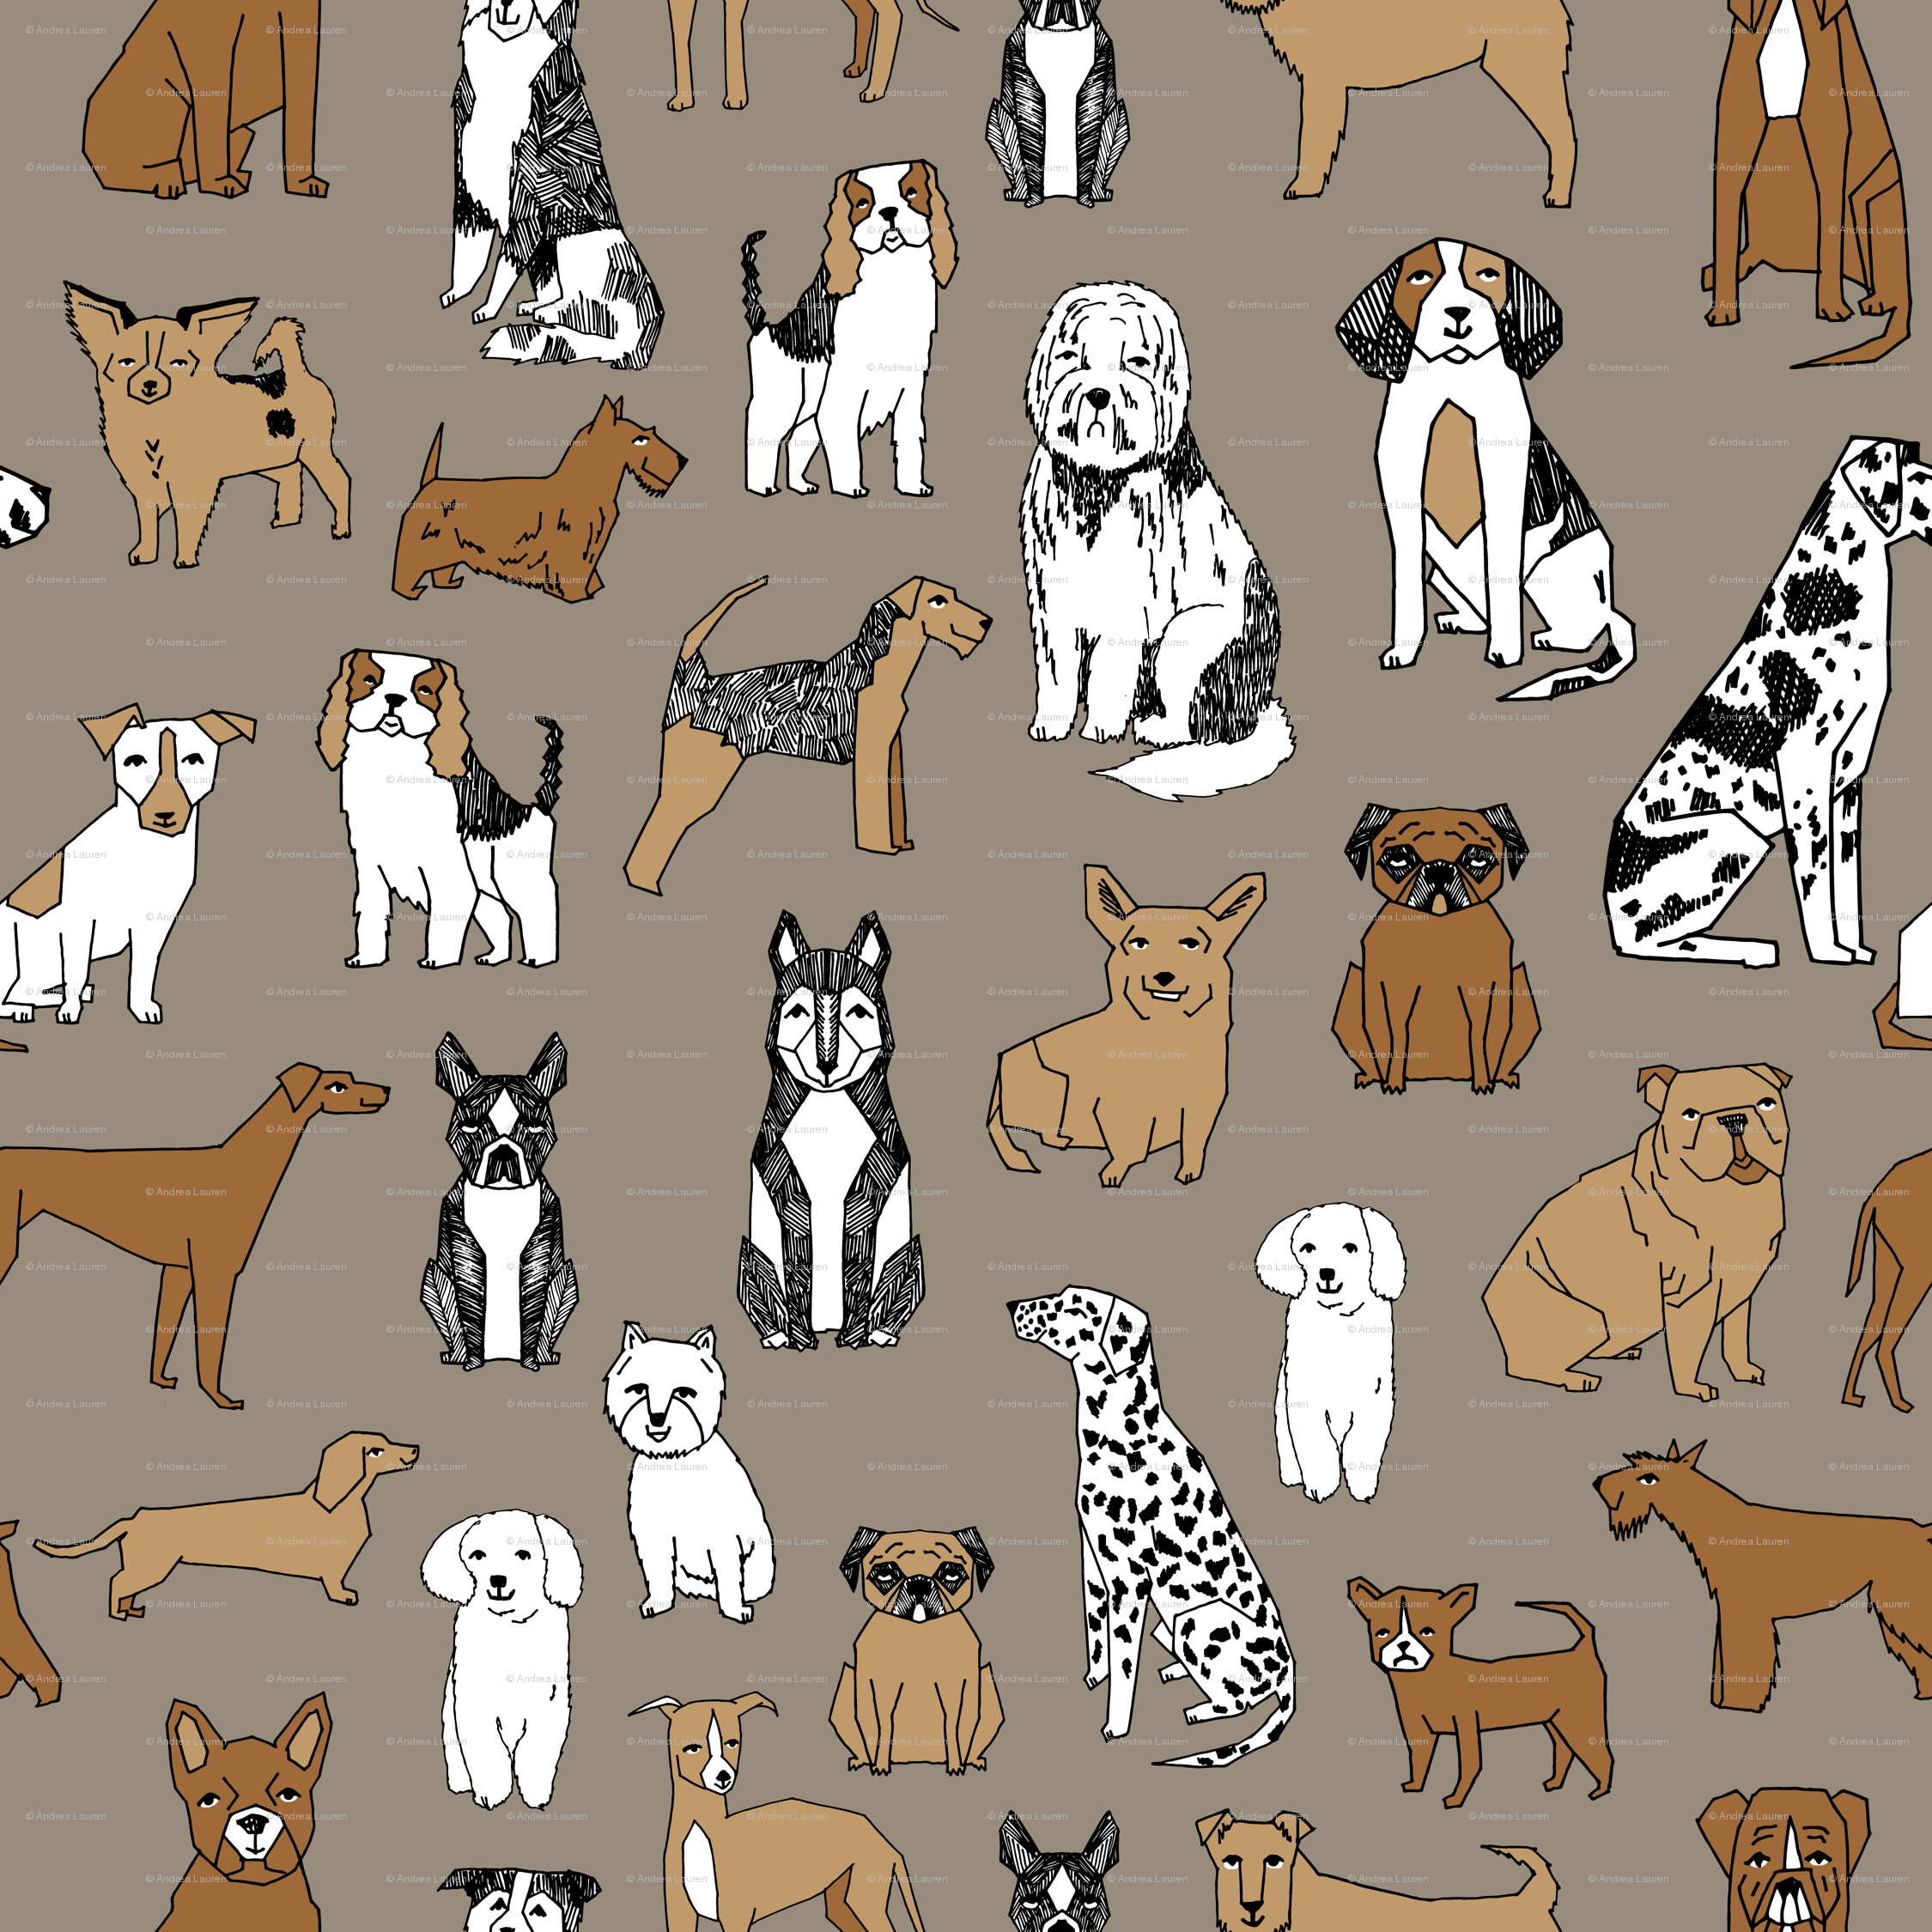 Must Love Dogs Wallpaper : dog toile fabric - Google Search Must Love Dogs Pinterest Dog wallpaper, Dog shower and ...